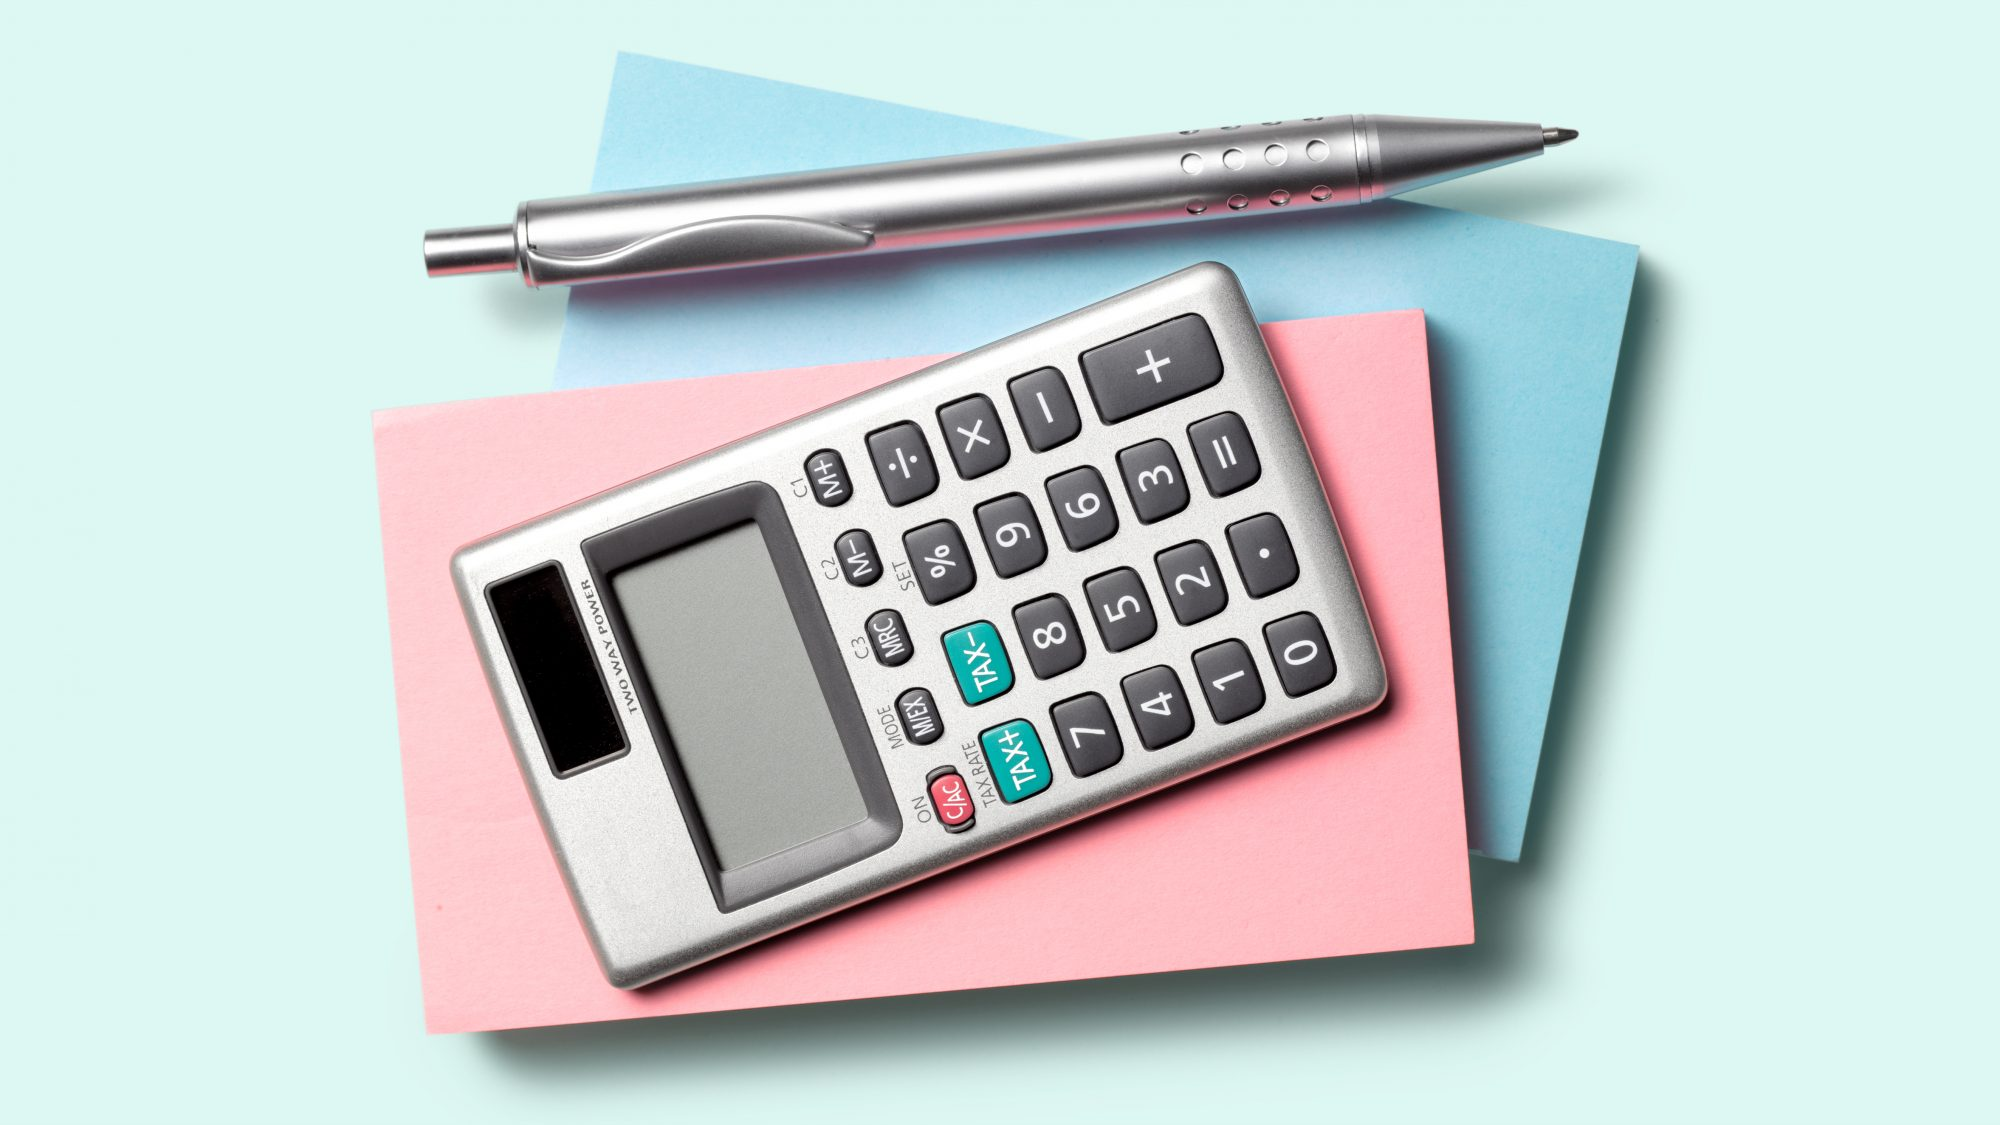 How to budget money: calculator and pen with budgeting notebook